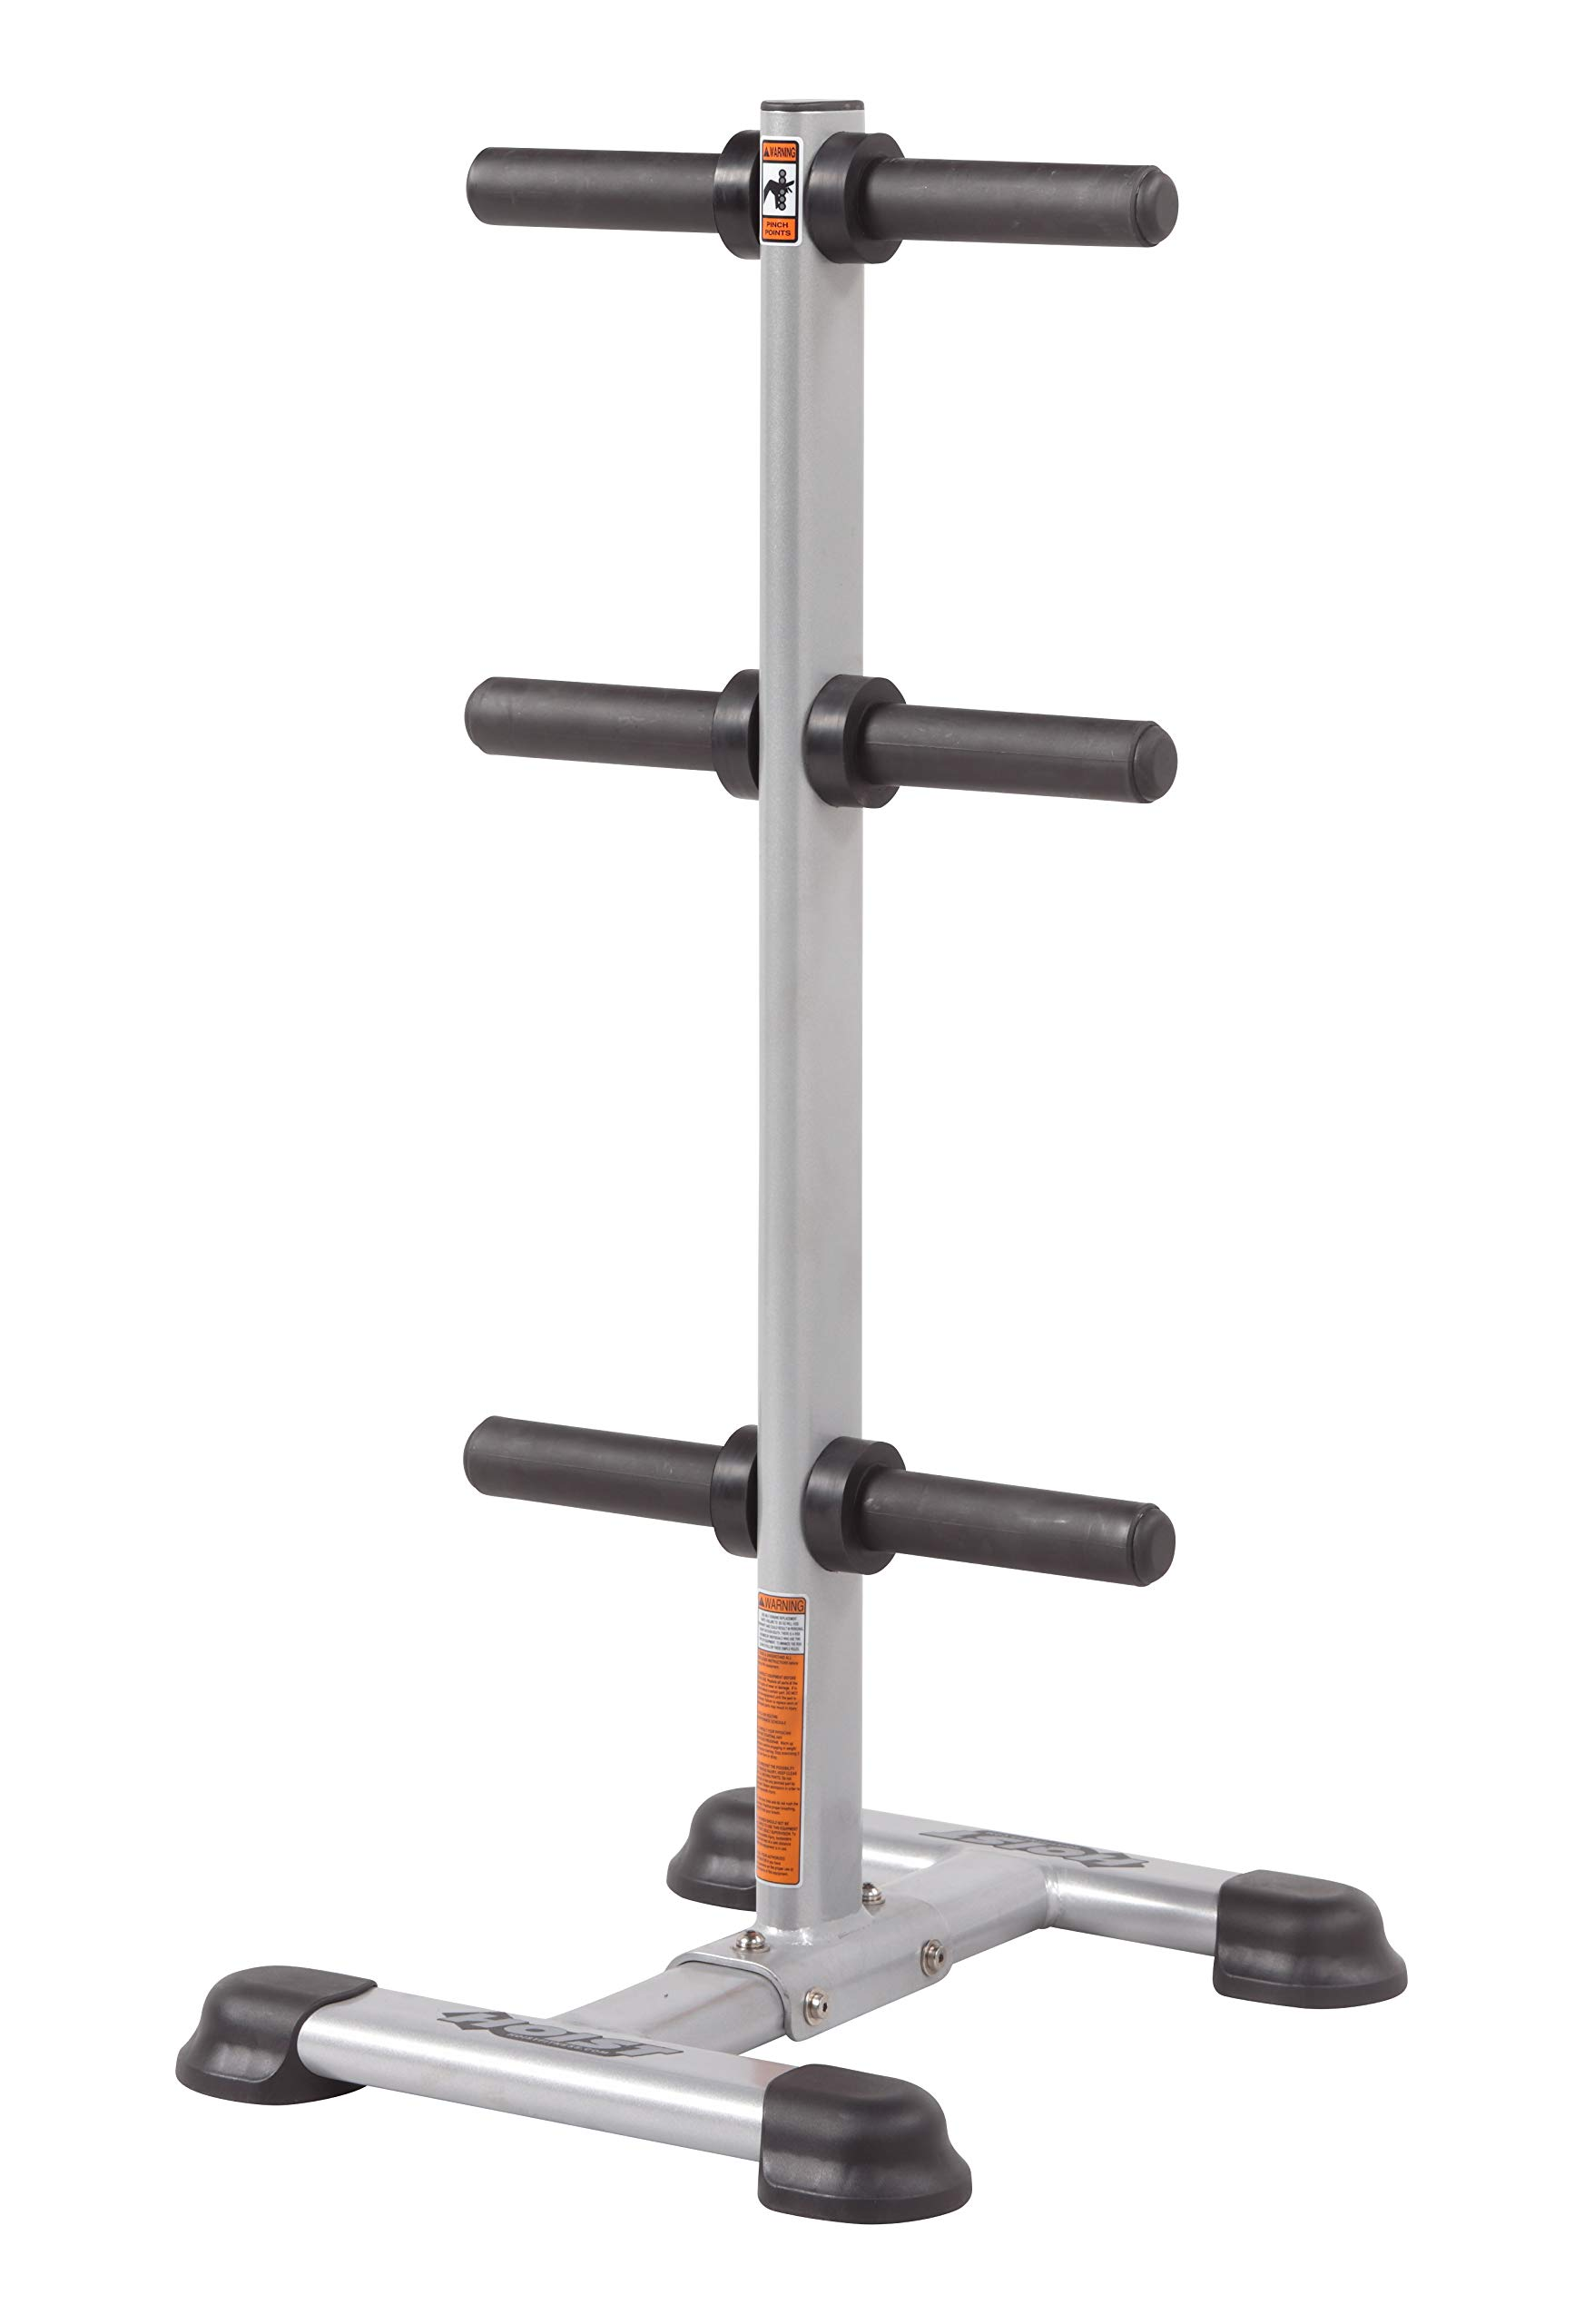 HOIST FITNESS HF-5444 Olympic Weight Tree